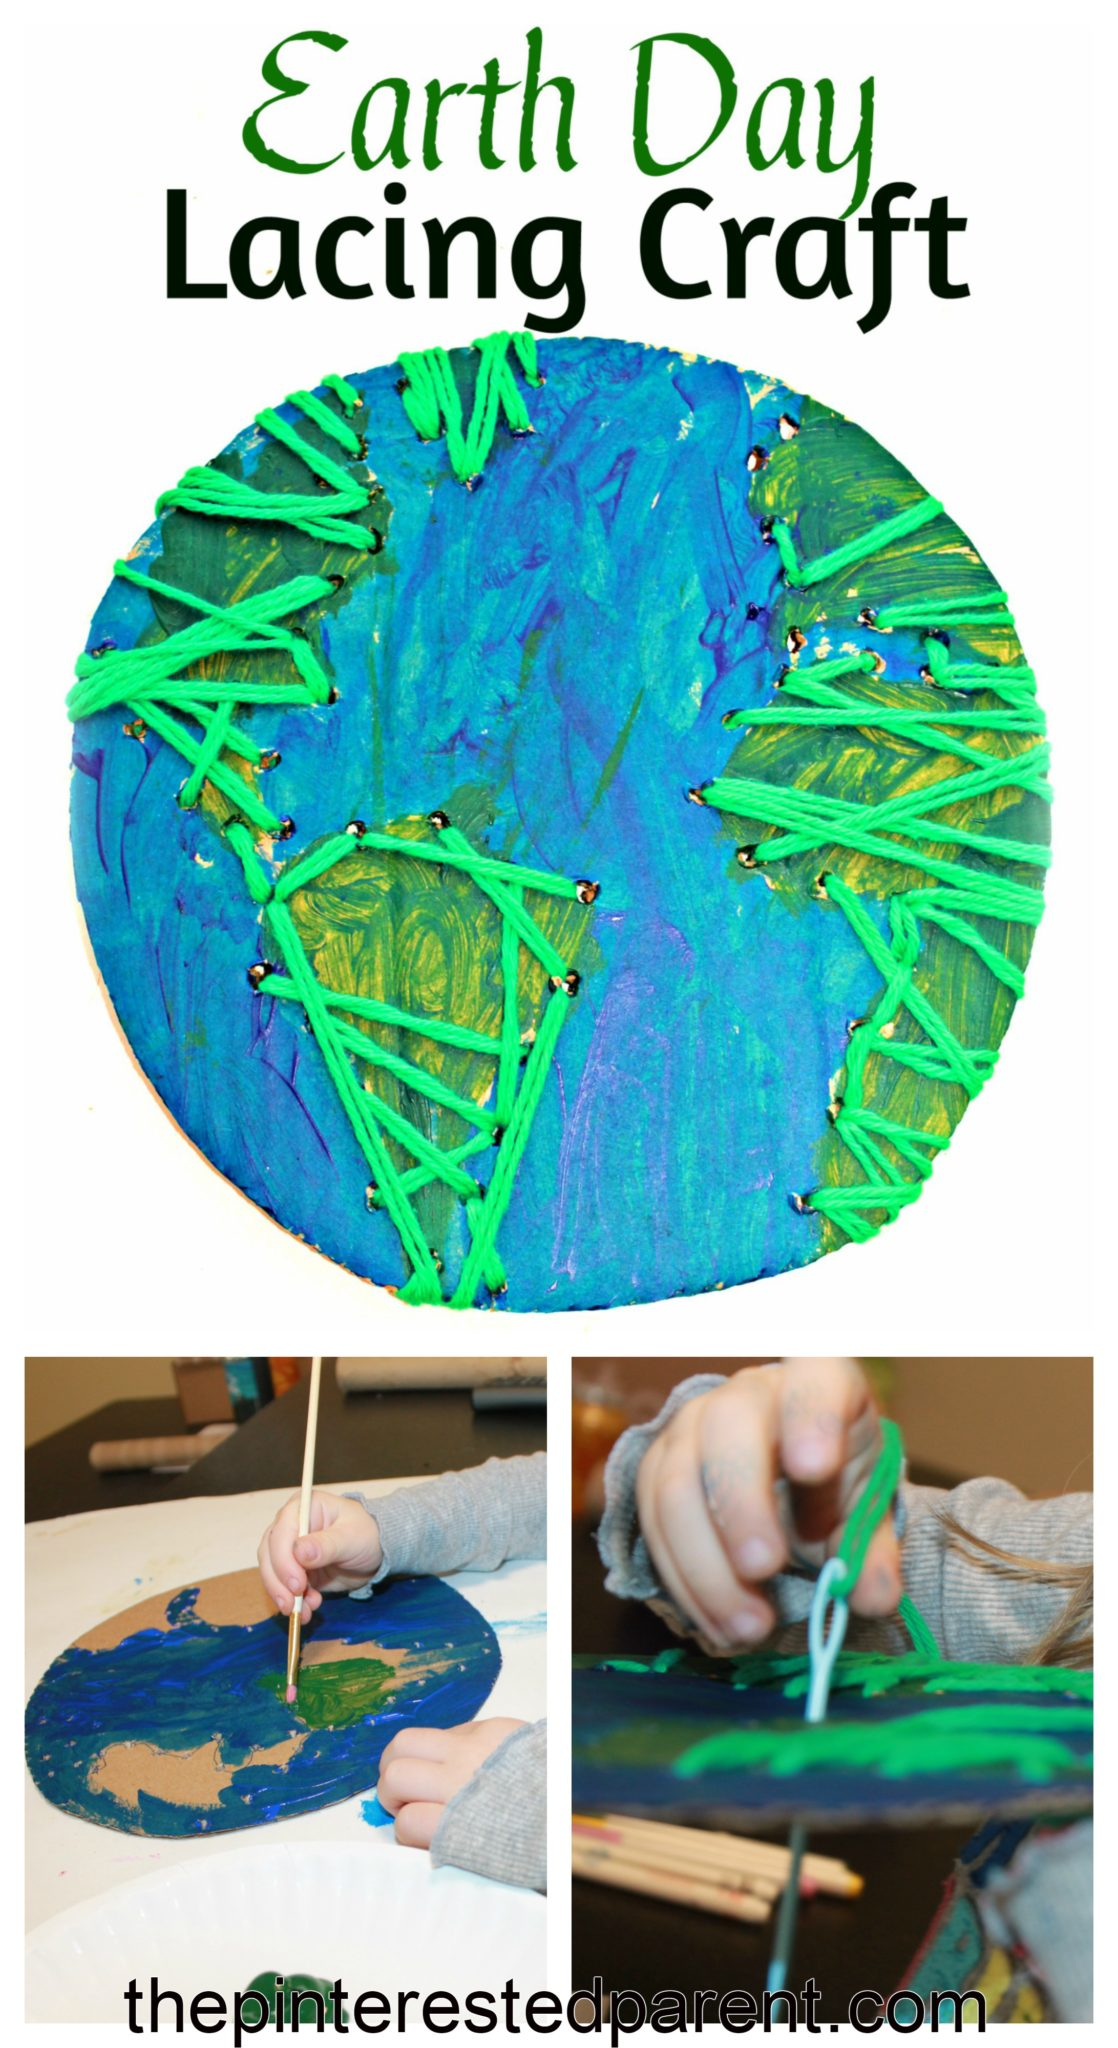 Earth Day Lacing Craft The Pinterested Parent